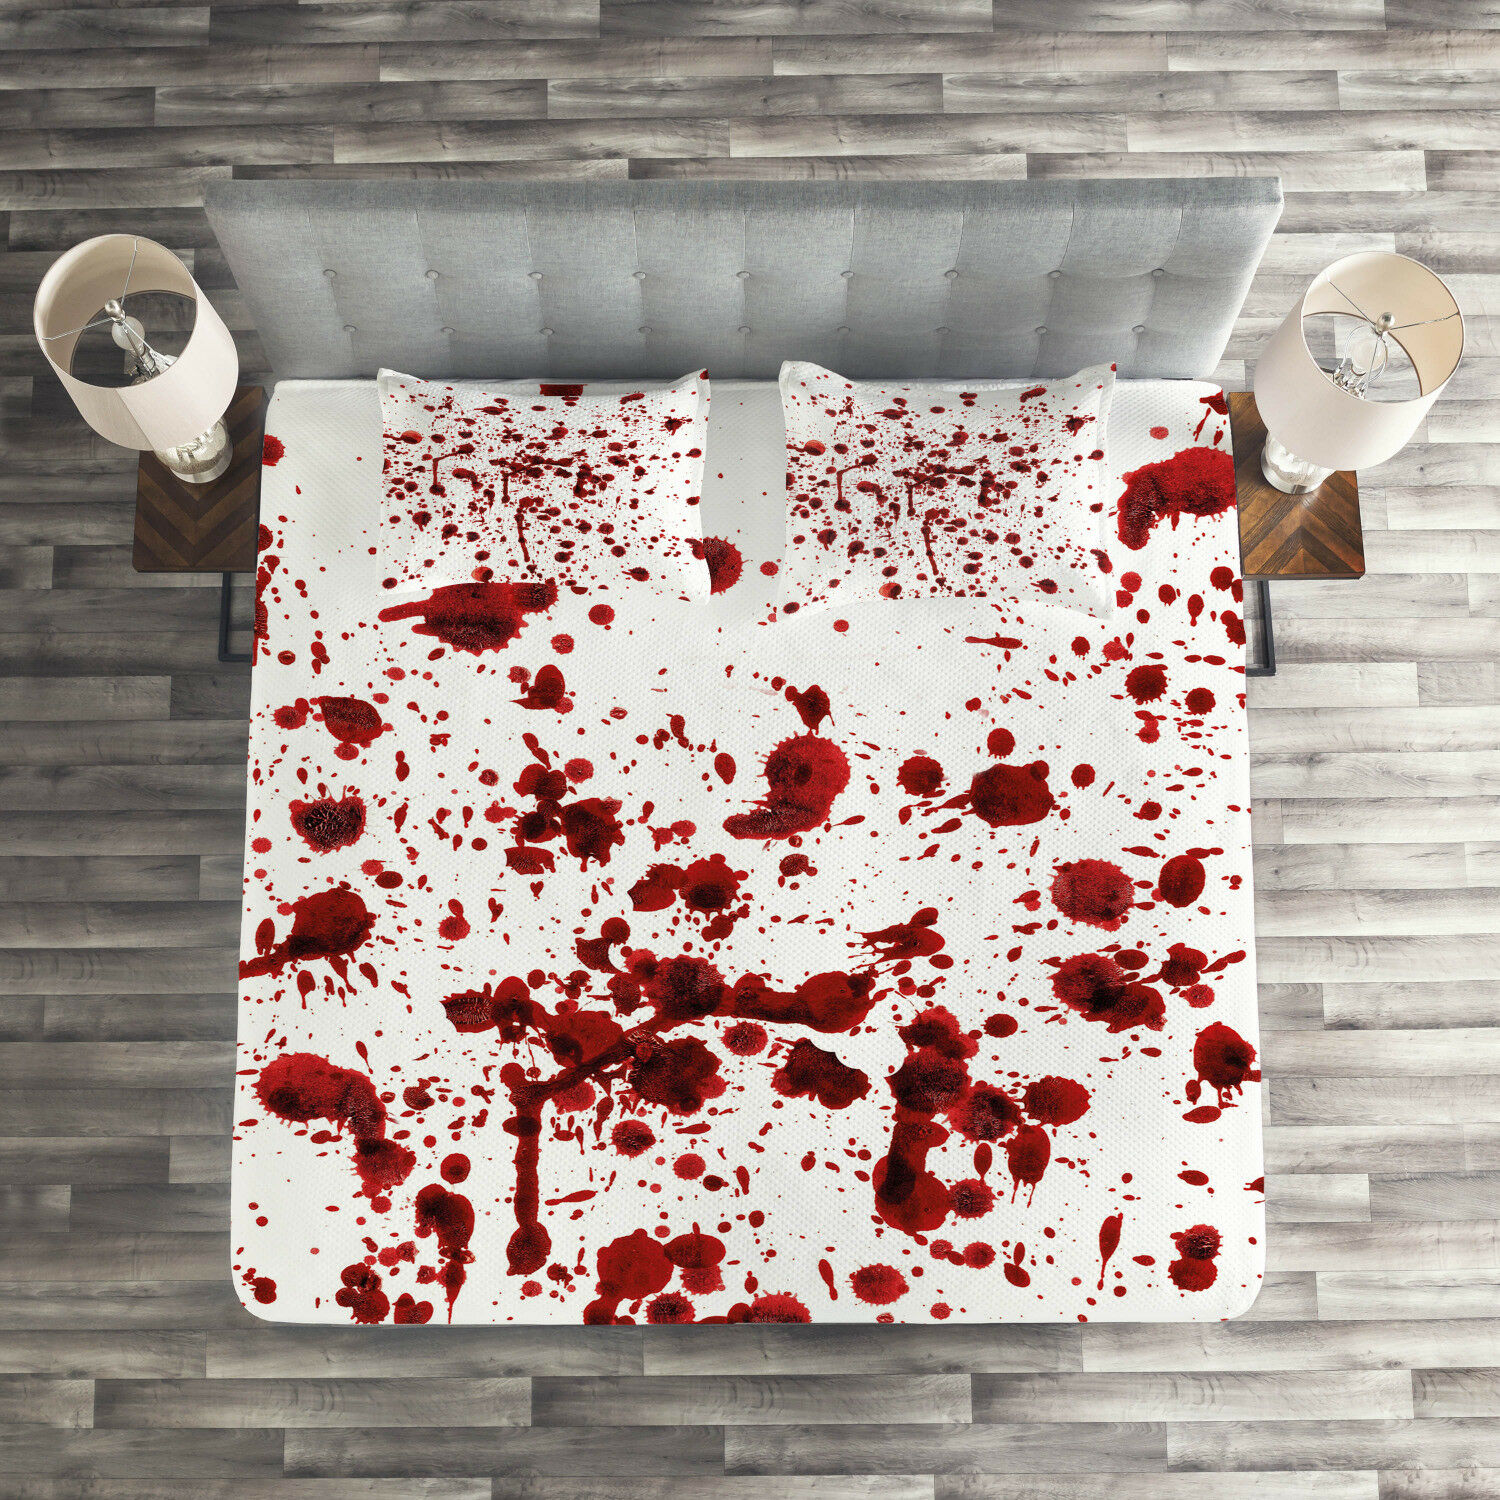 Bloody Quilted Coverlet & Pillow Shams Set, Splashes of Blood Scary Print